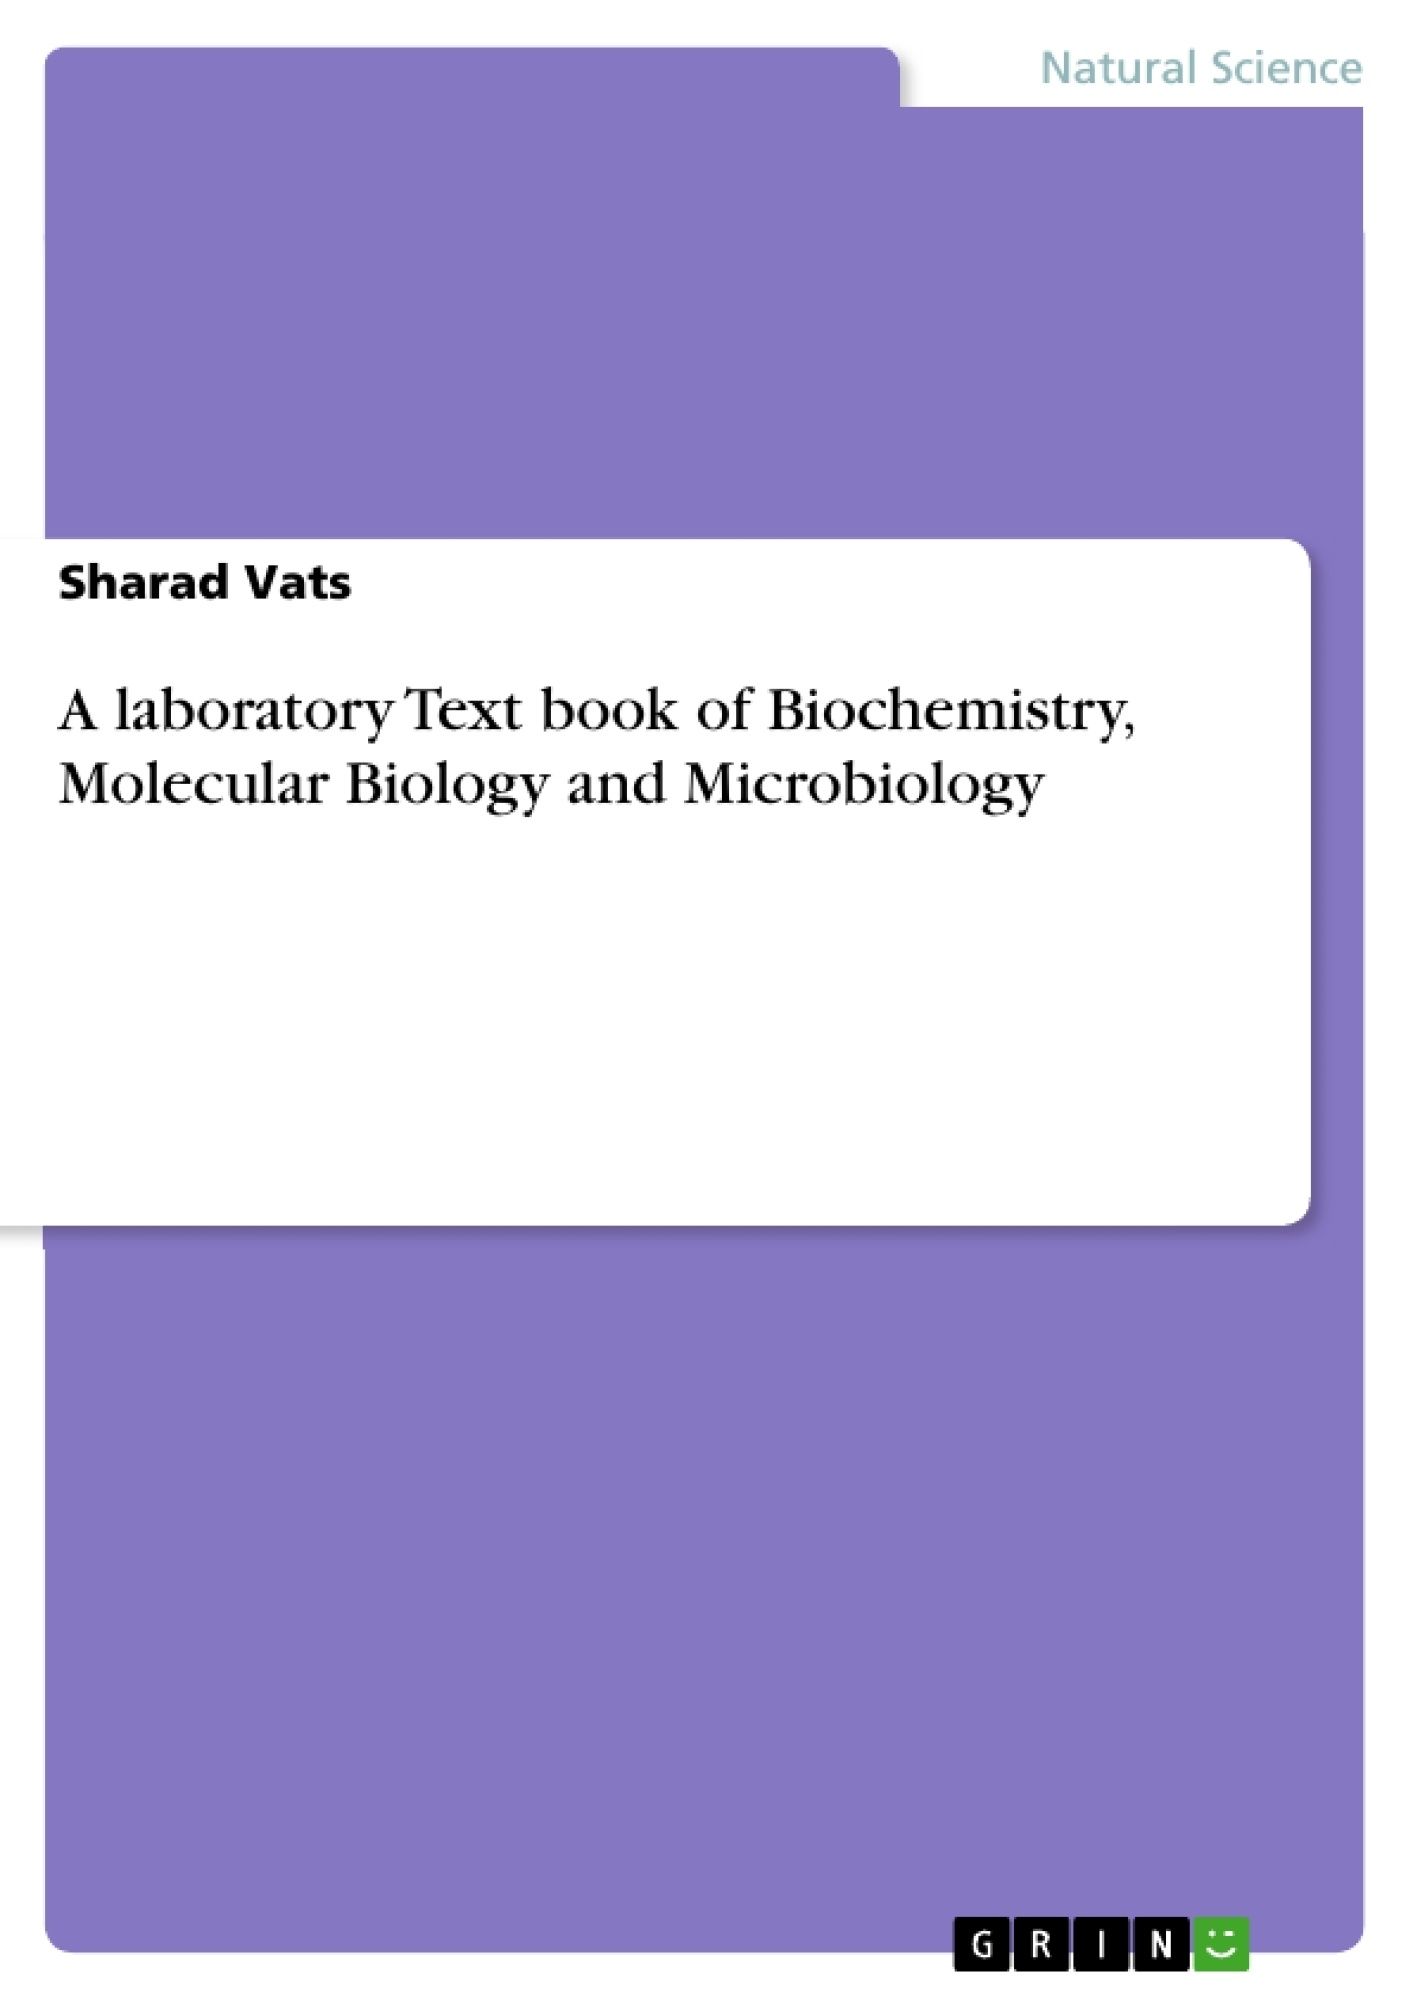 Title: A laboratory Text book of Biochemistry, Molecular Biology and Microbiology